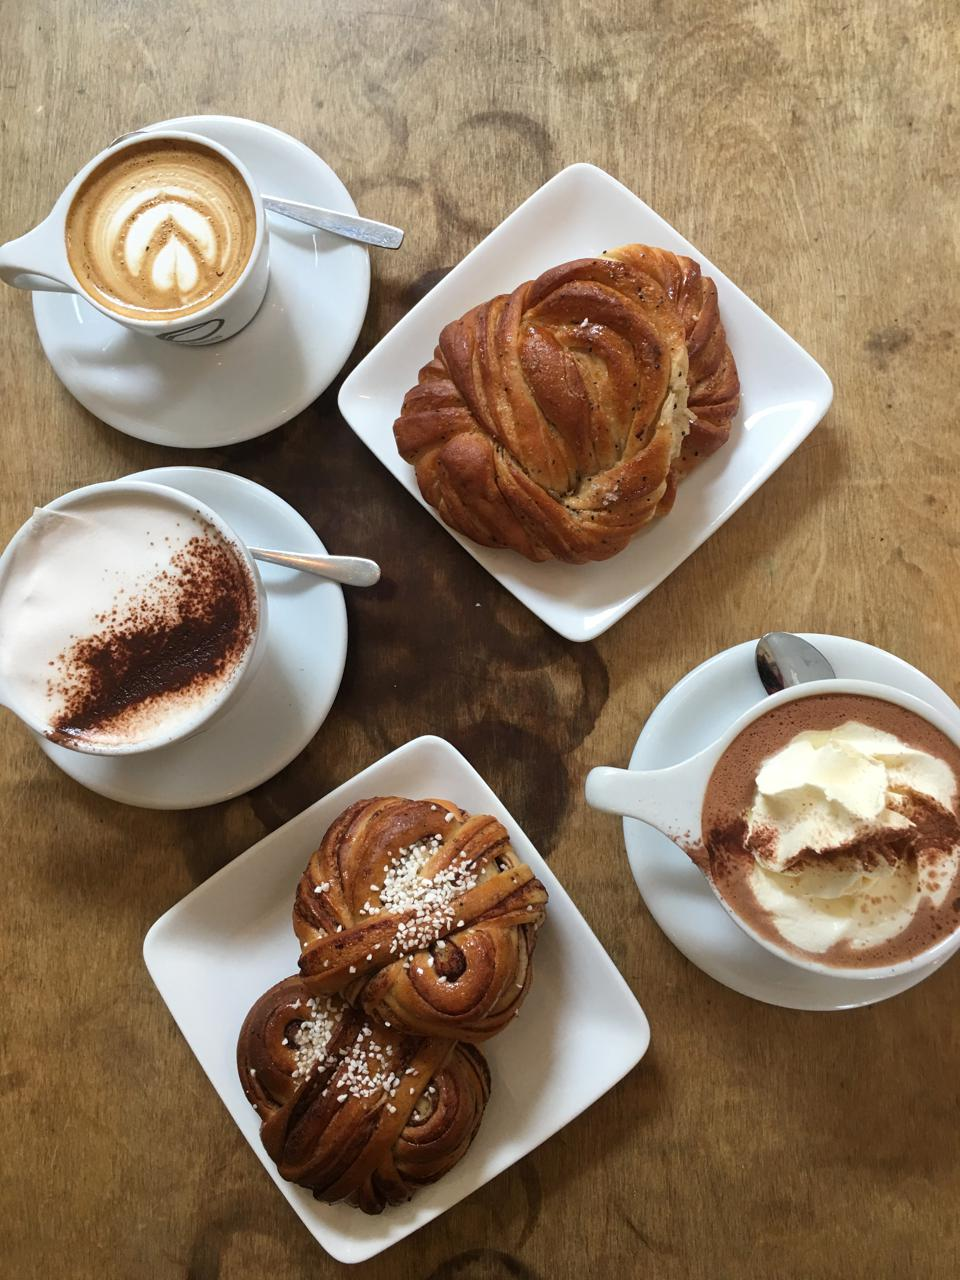 Coffee, cardamom and cinnamon buns.